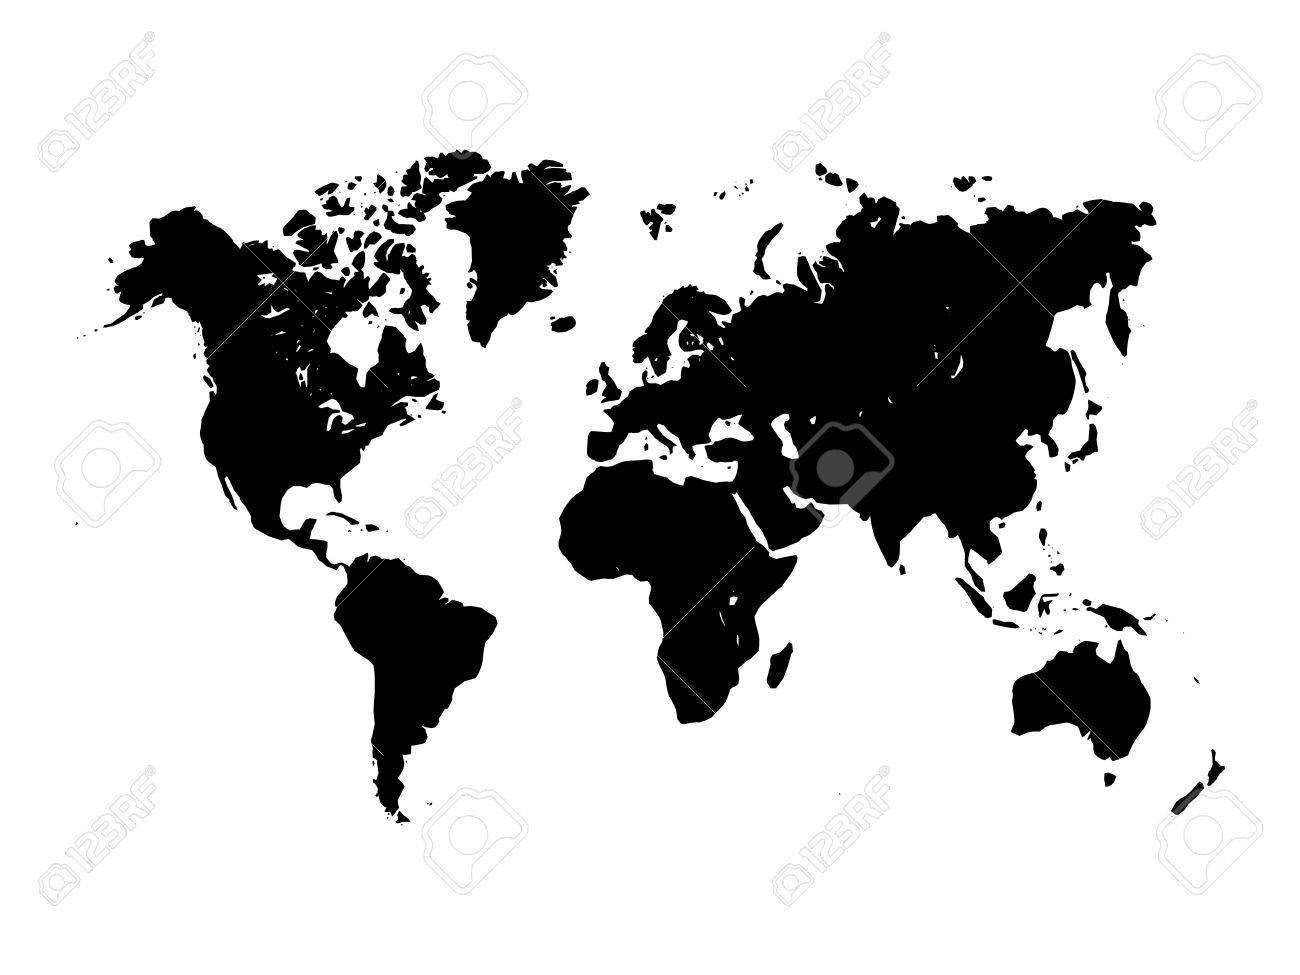 Map of world black silhouette on white background simplified map of world black silhouette on white background simplified world map stock vector gumiabroncs Gallery